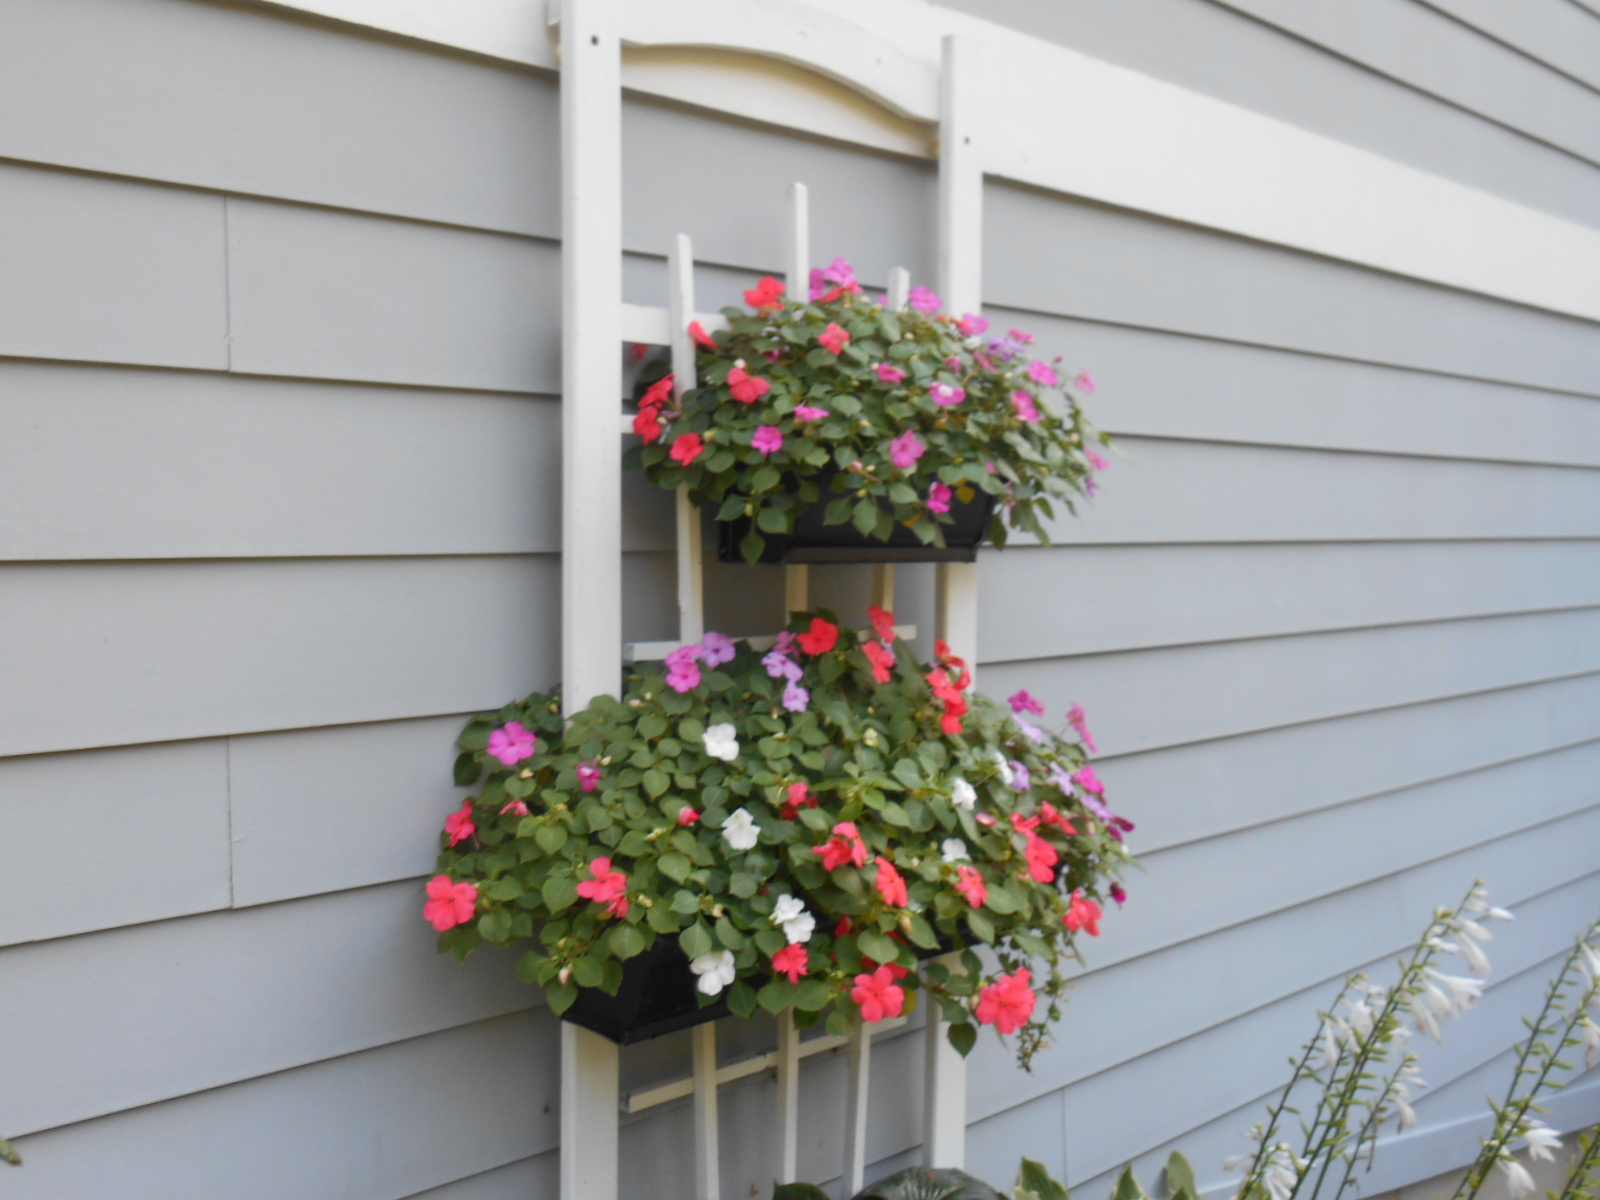 100 porch rail flower boxes balcony garden viva self watering balcony railing planter balcony - Growing petunias pots balconies porches ...